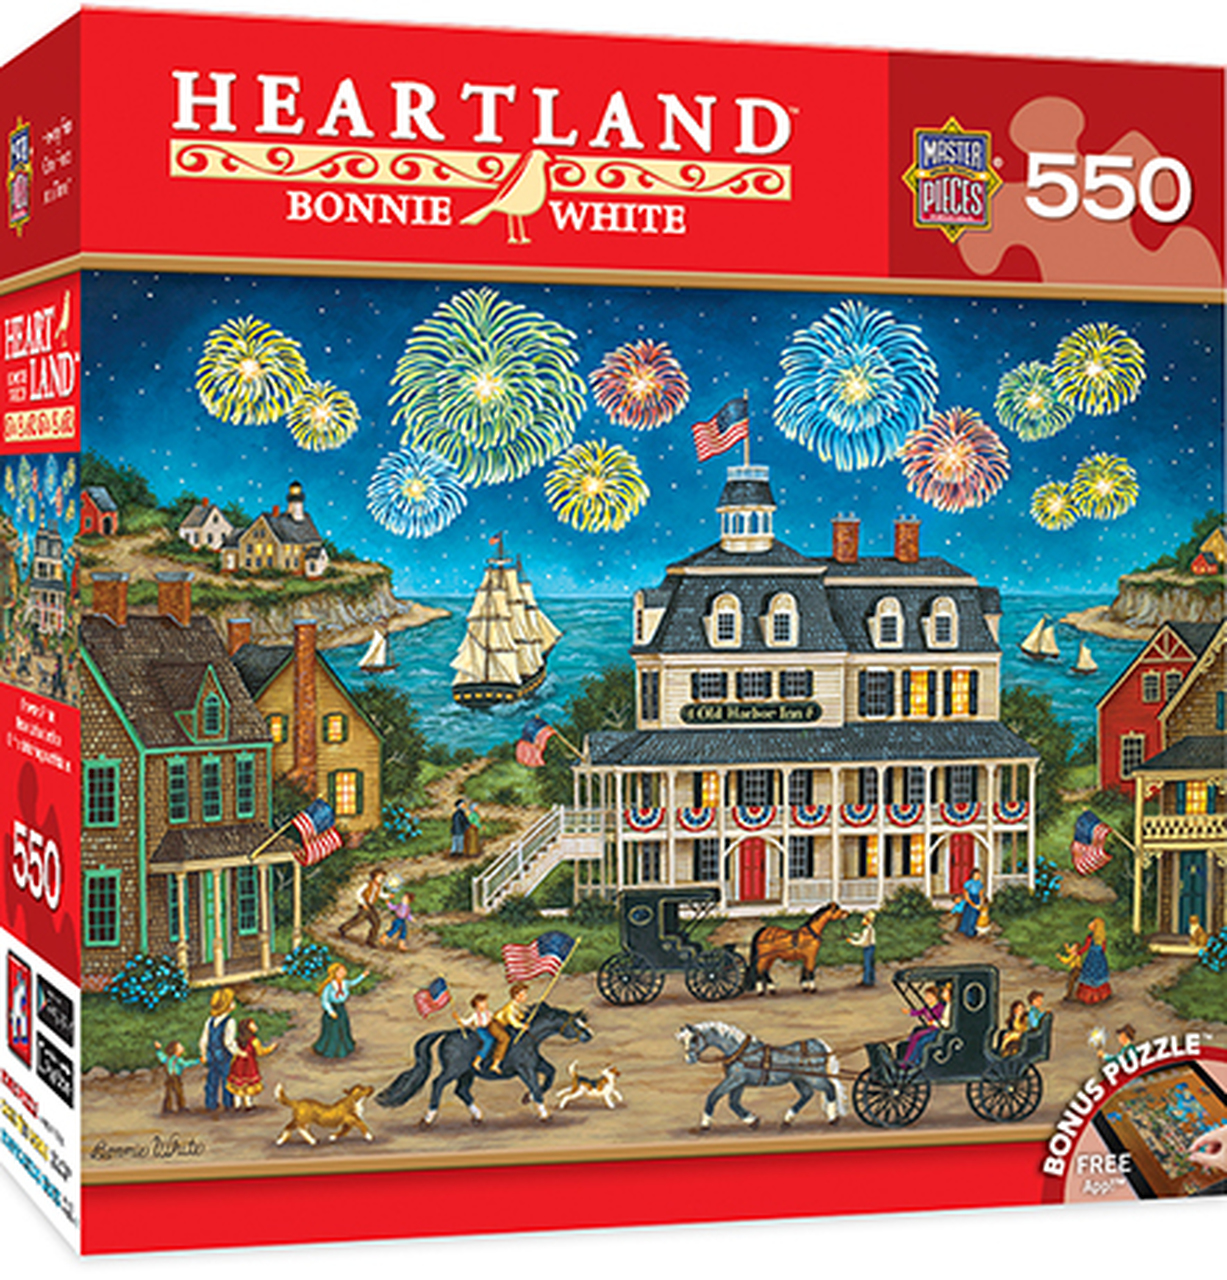 master-pieces-heartland-fireworks-finale-550-teile-puzzle-master-pieces-31680